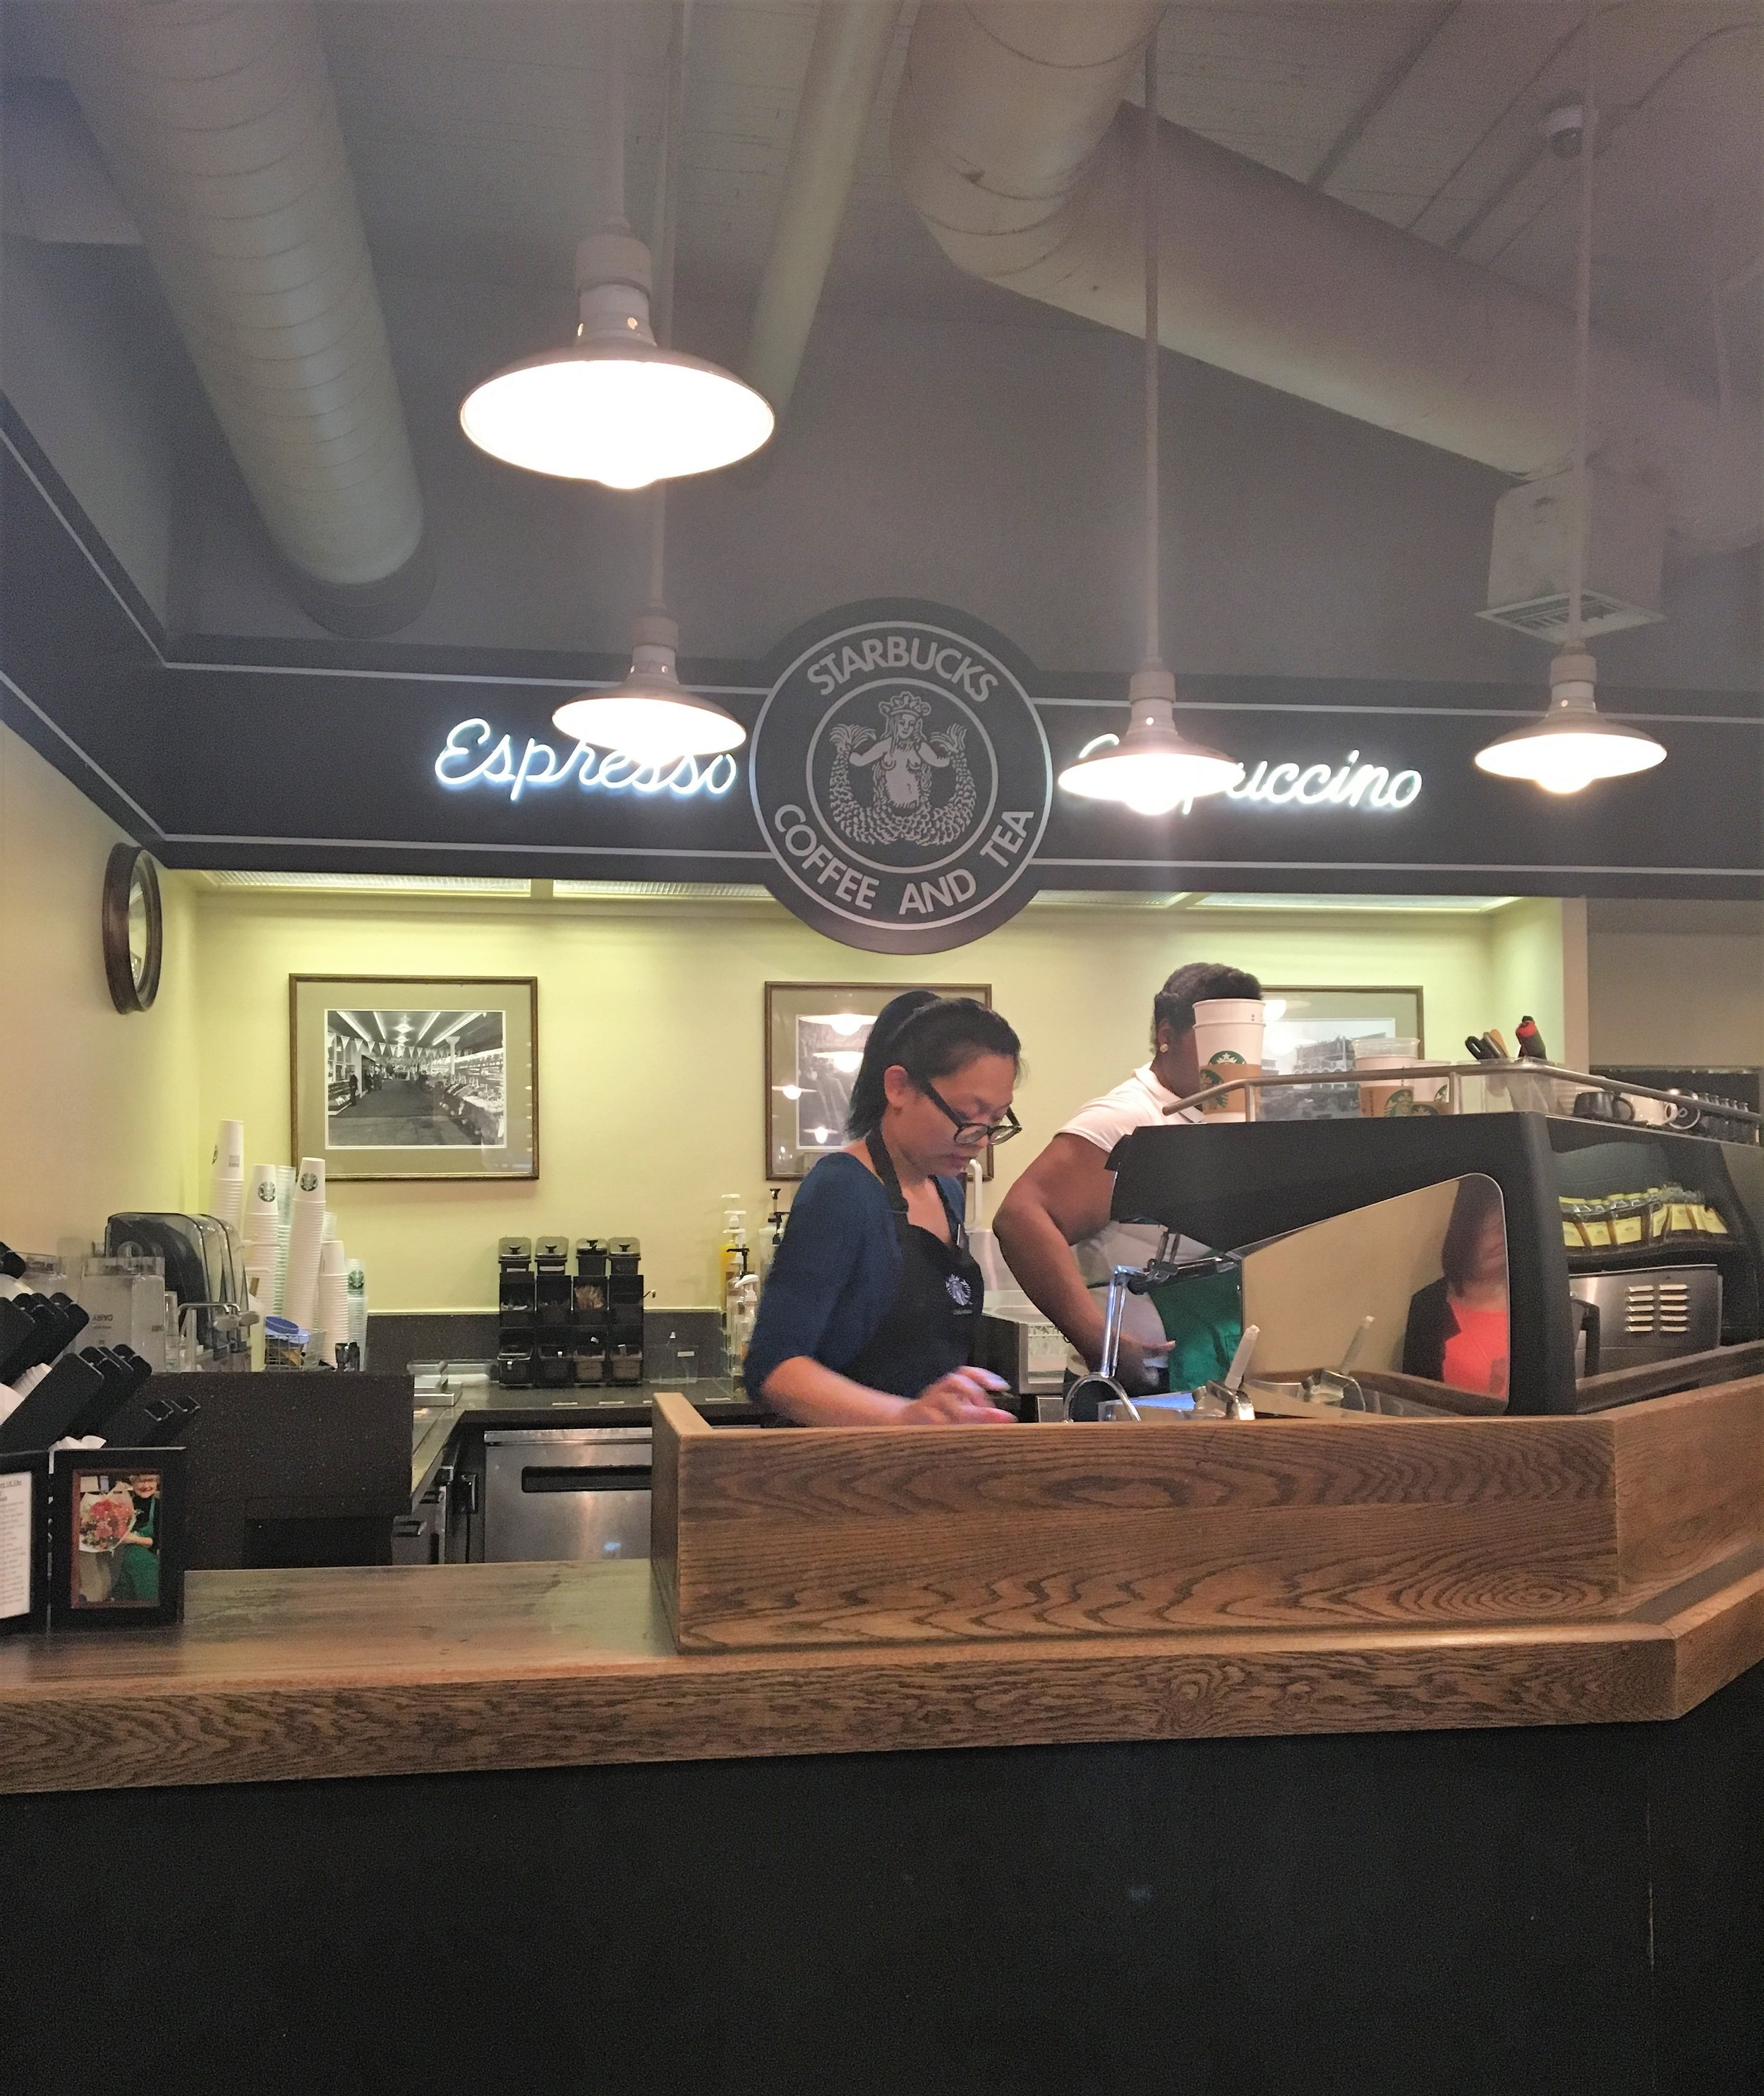 FOUND IT. The original Starbucks for our morning cup of joe!